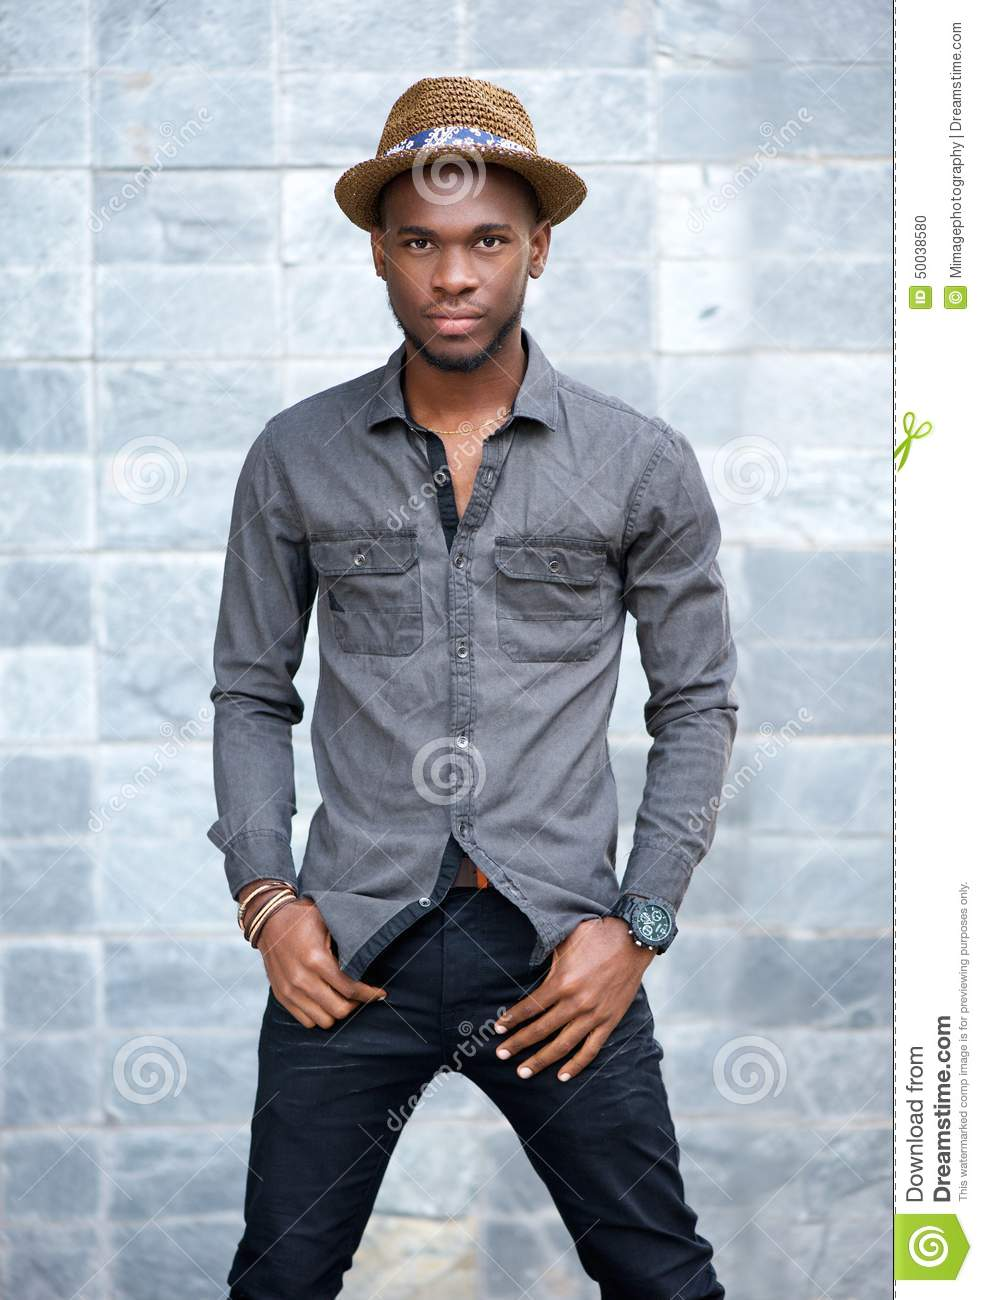 African American Male Fashion Model With Hat Stock Photo Image Of Modern Attractive 50038580